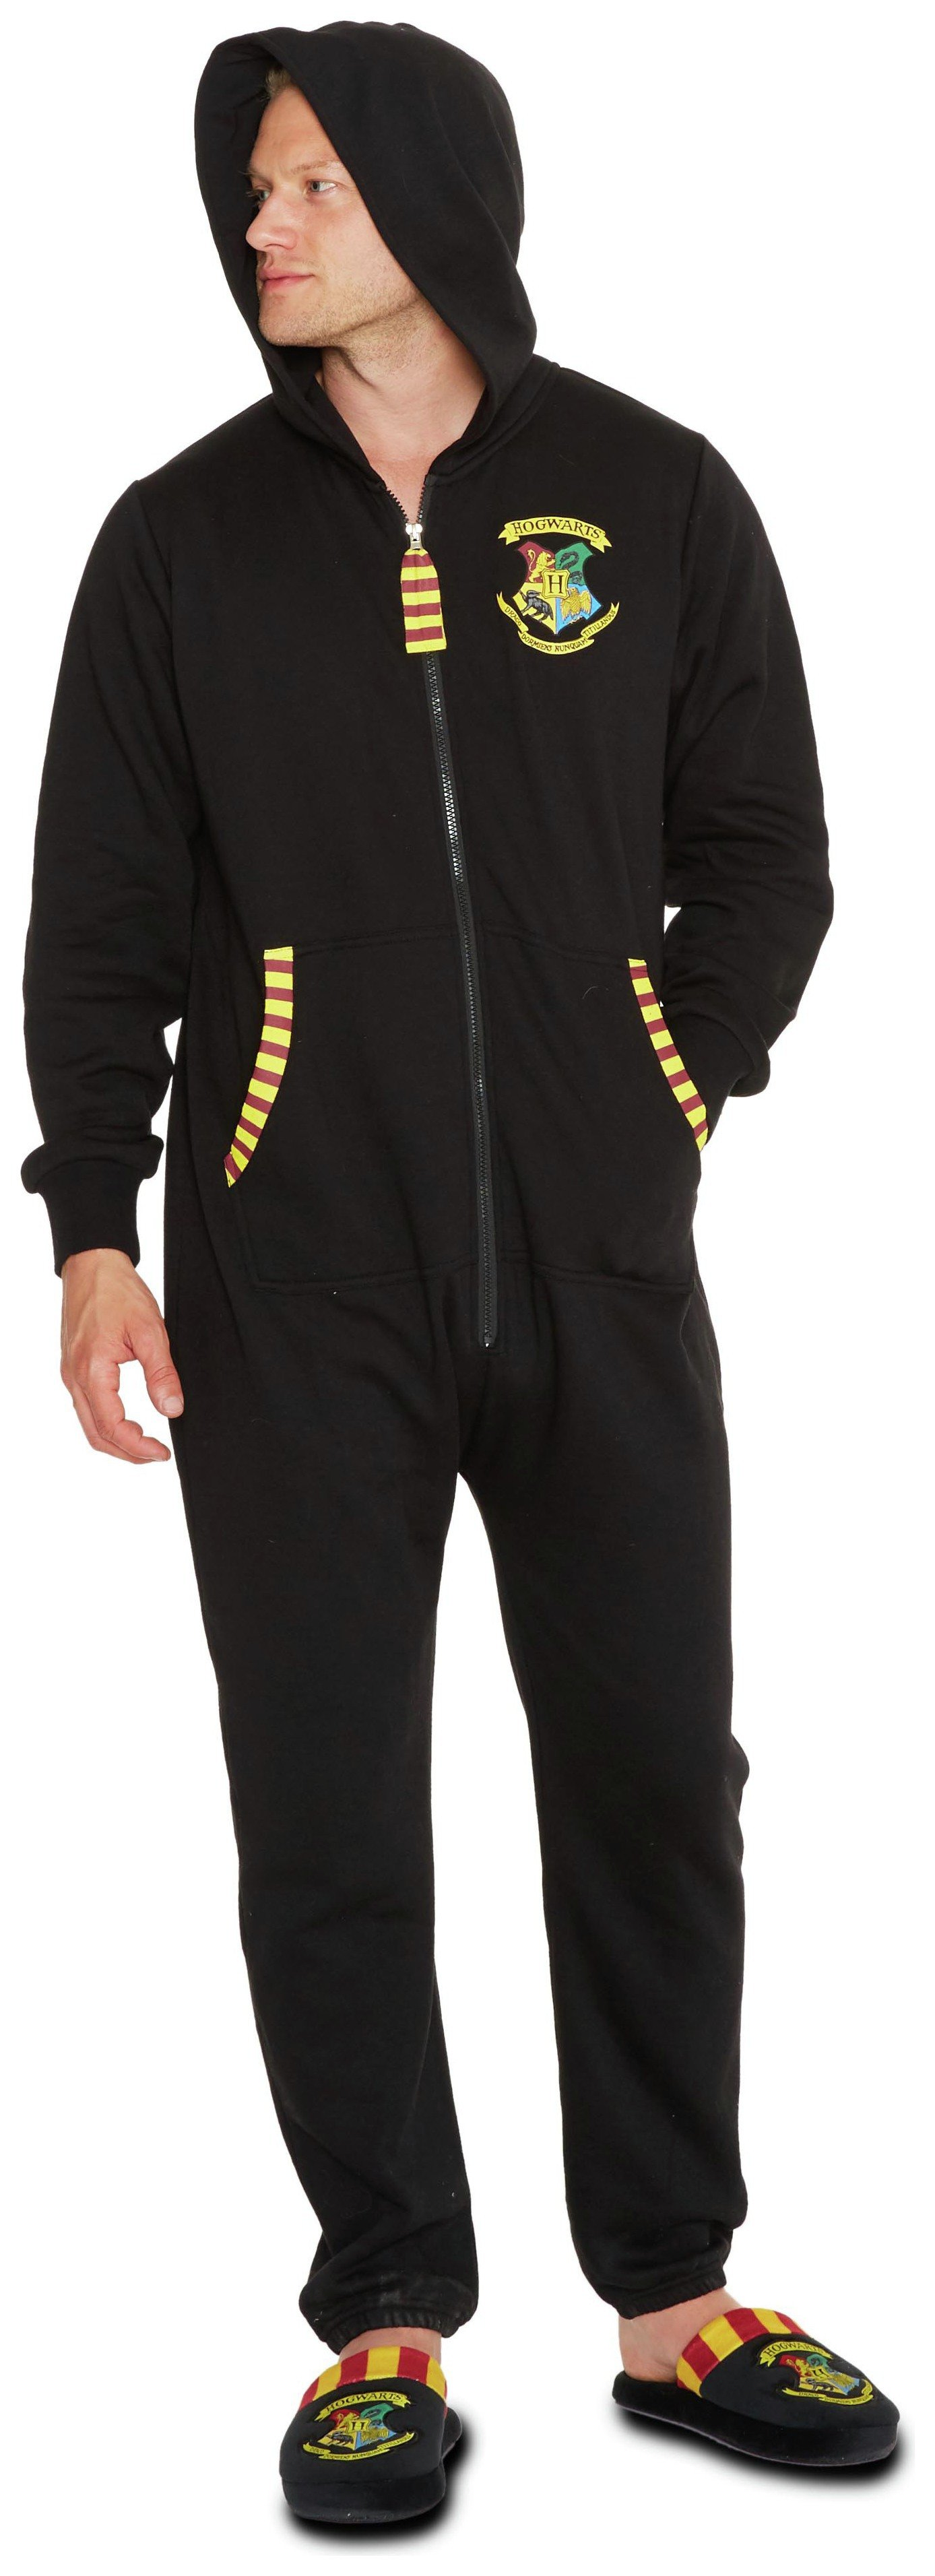 Harry Potter Hogwarts Onesie - Large